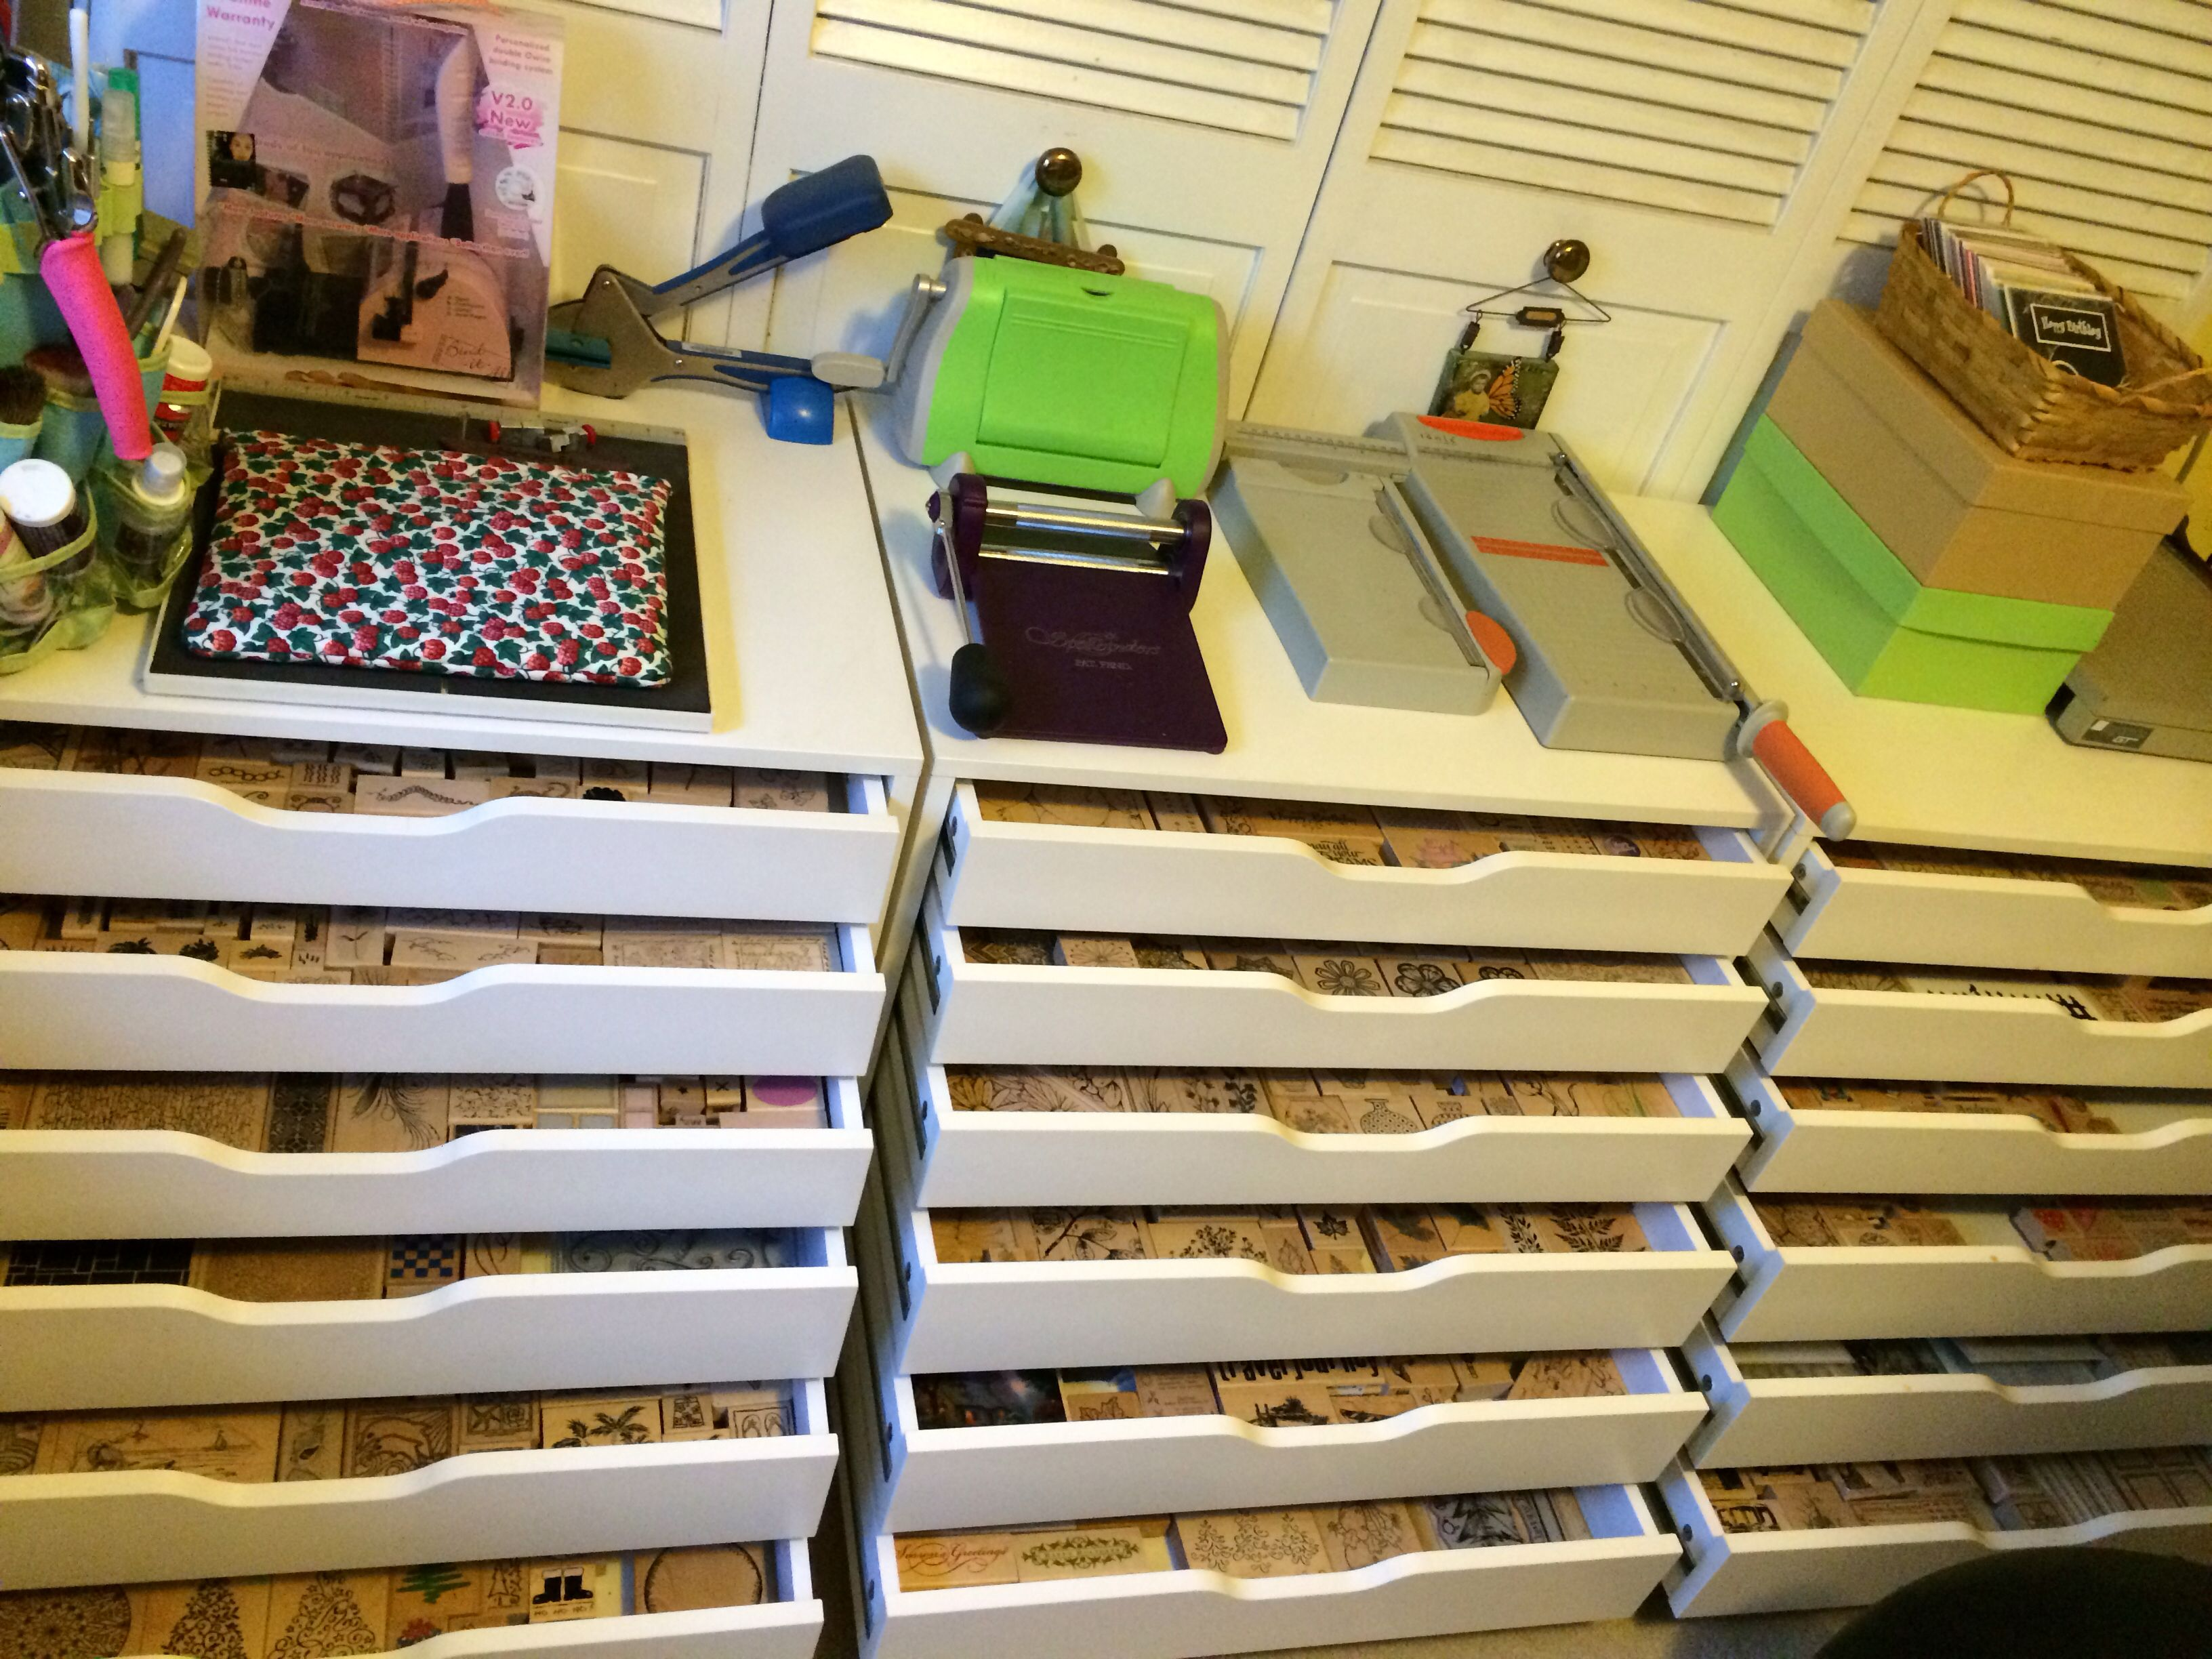 Rubber stamps arts and crafts - Rubber Stamp Storage Ikea Really Awesome Idea But I Would Need Alot Of These To